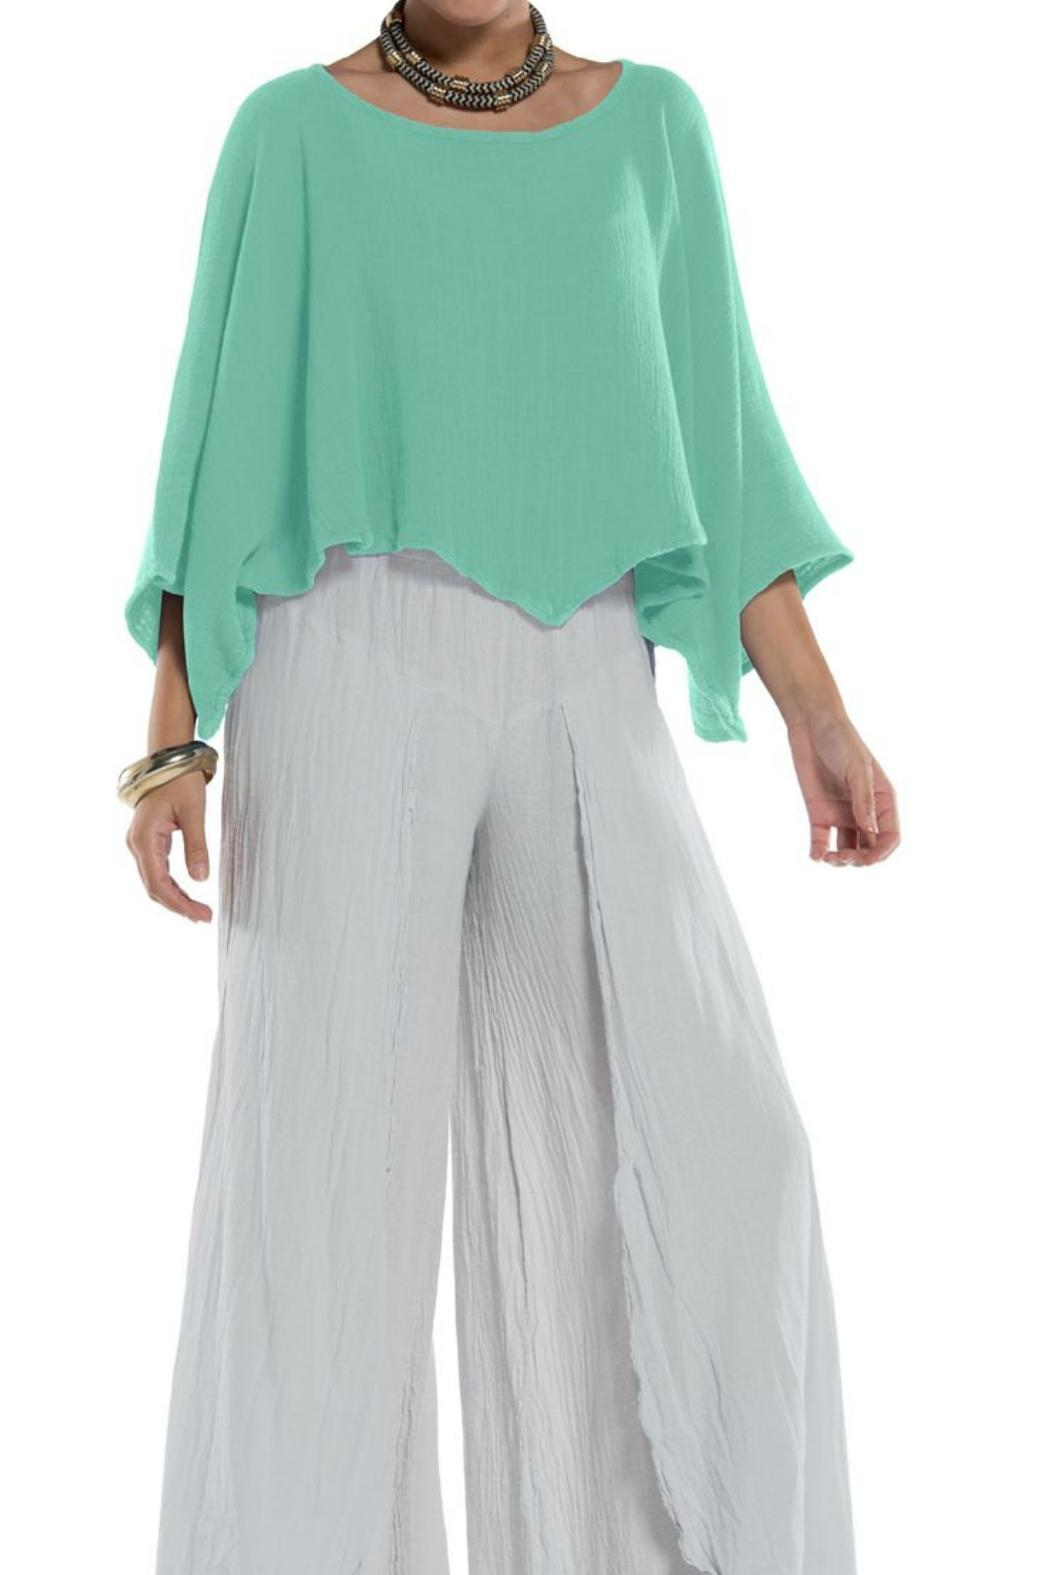 Oh My Gauze Vanna Top - Front Cropped Image